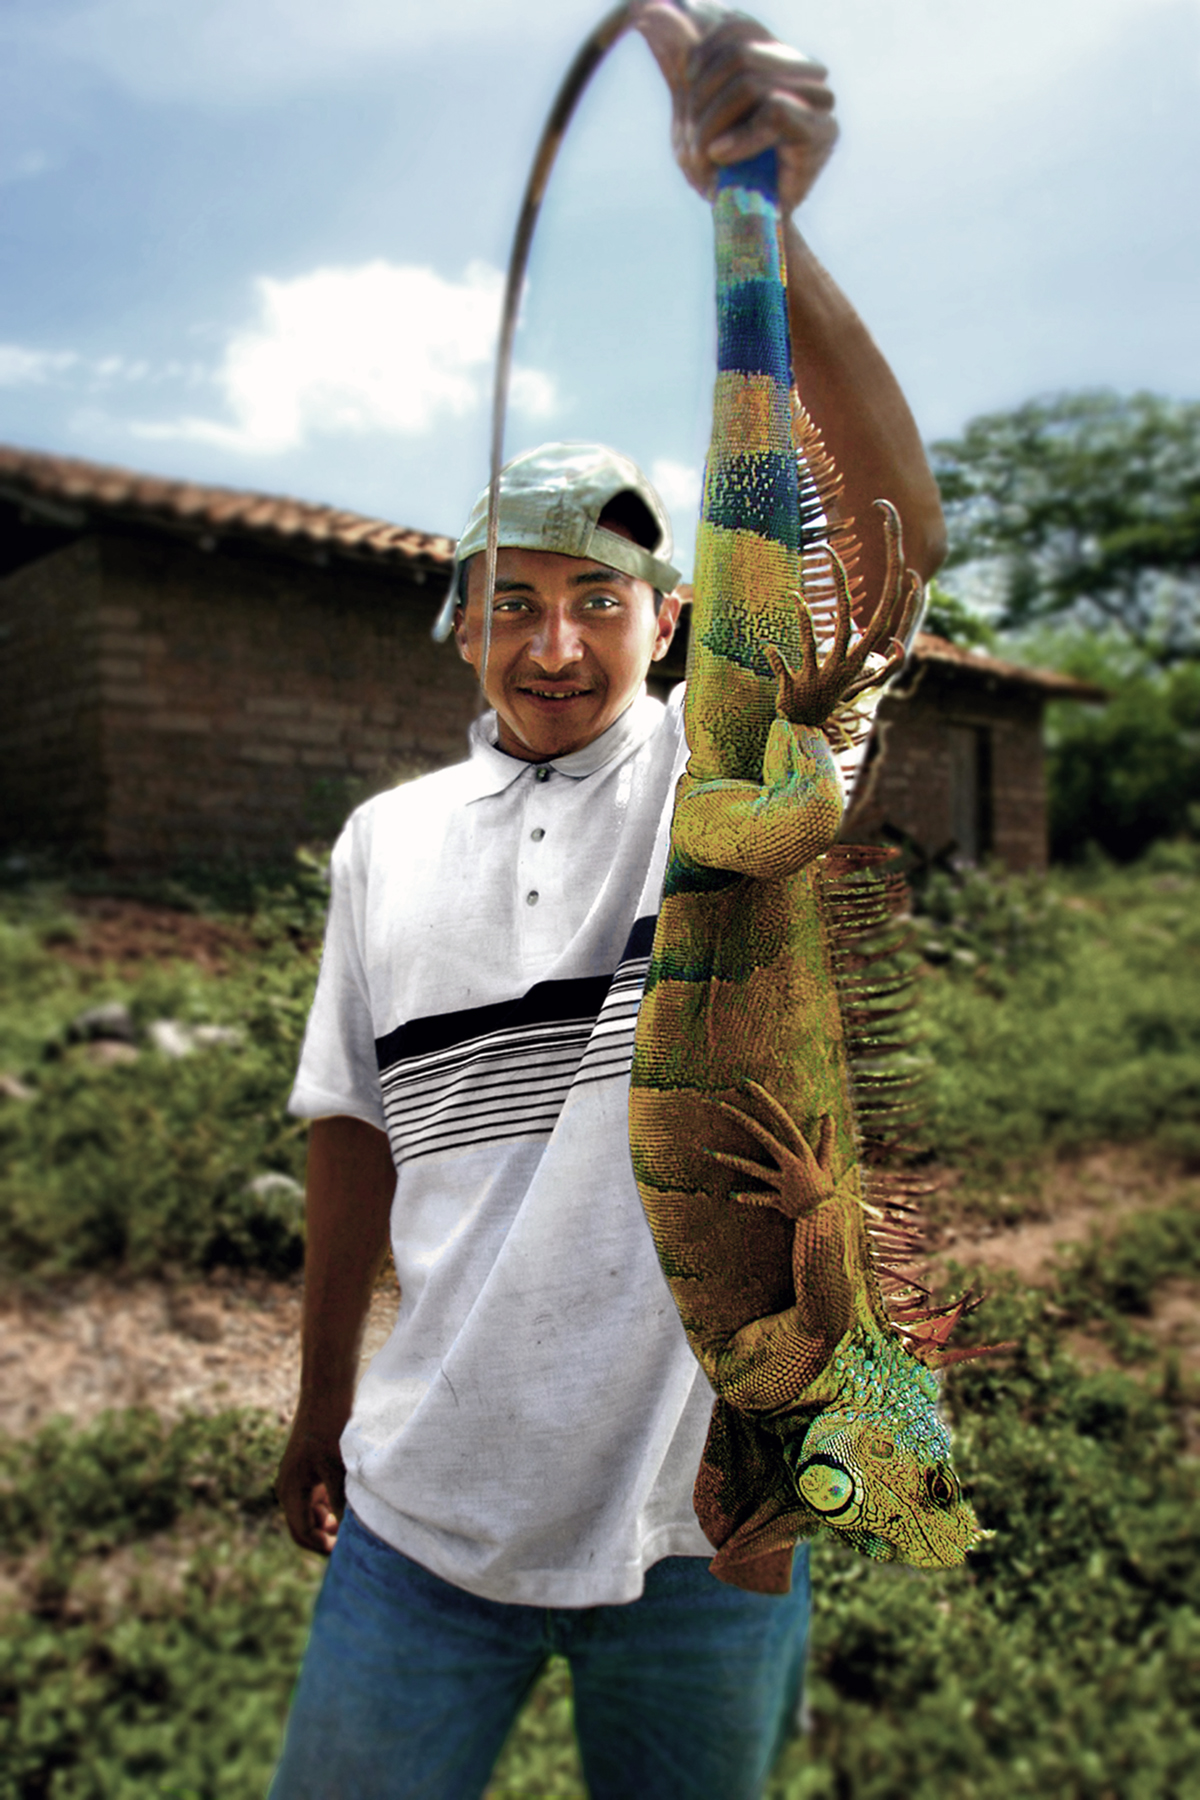 Boy selling iguanas in Honduras